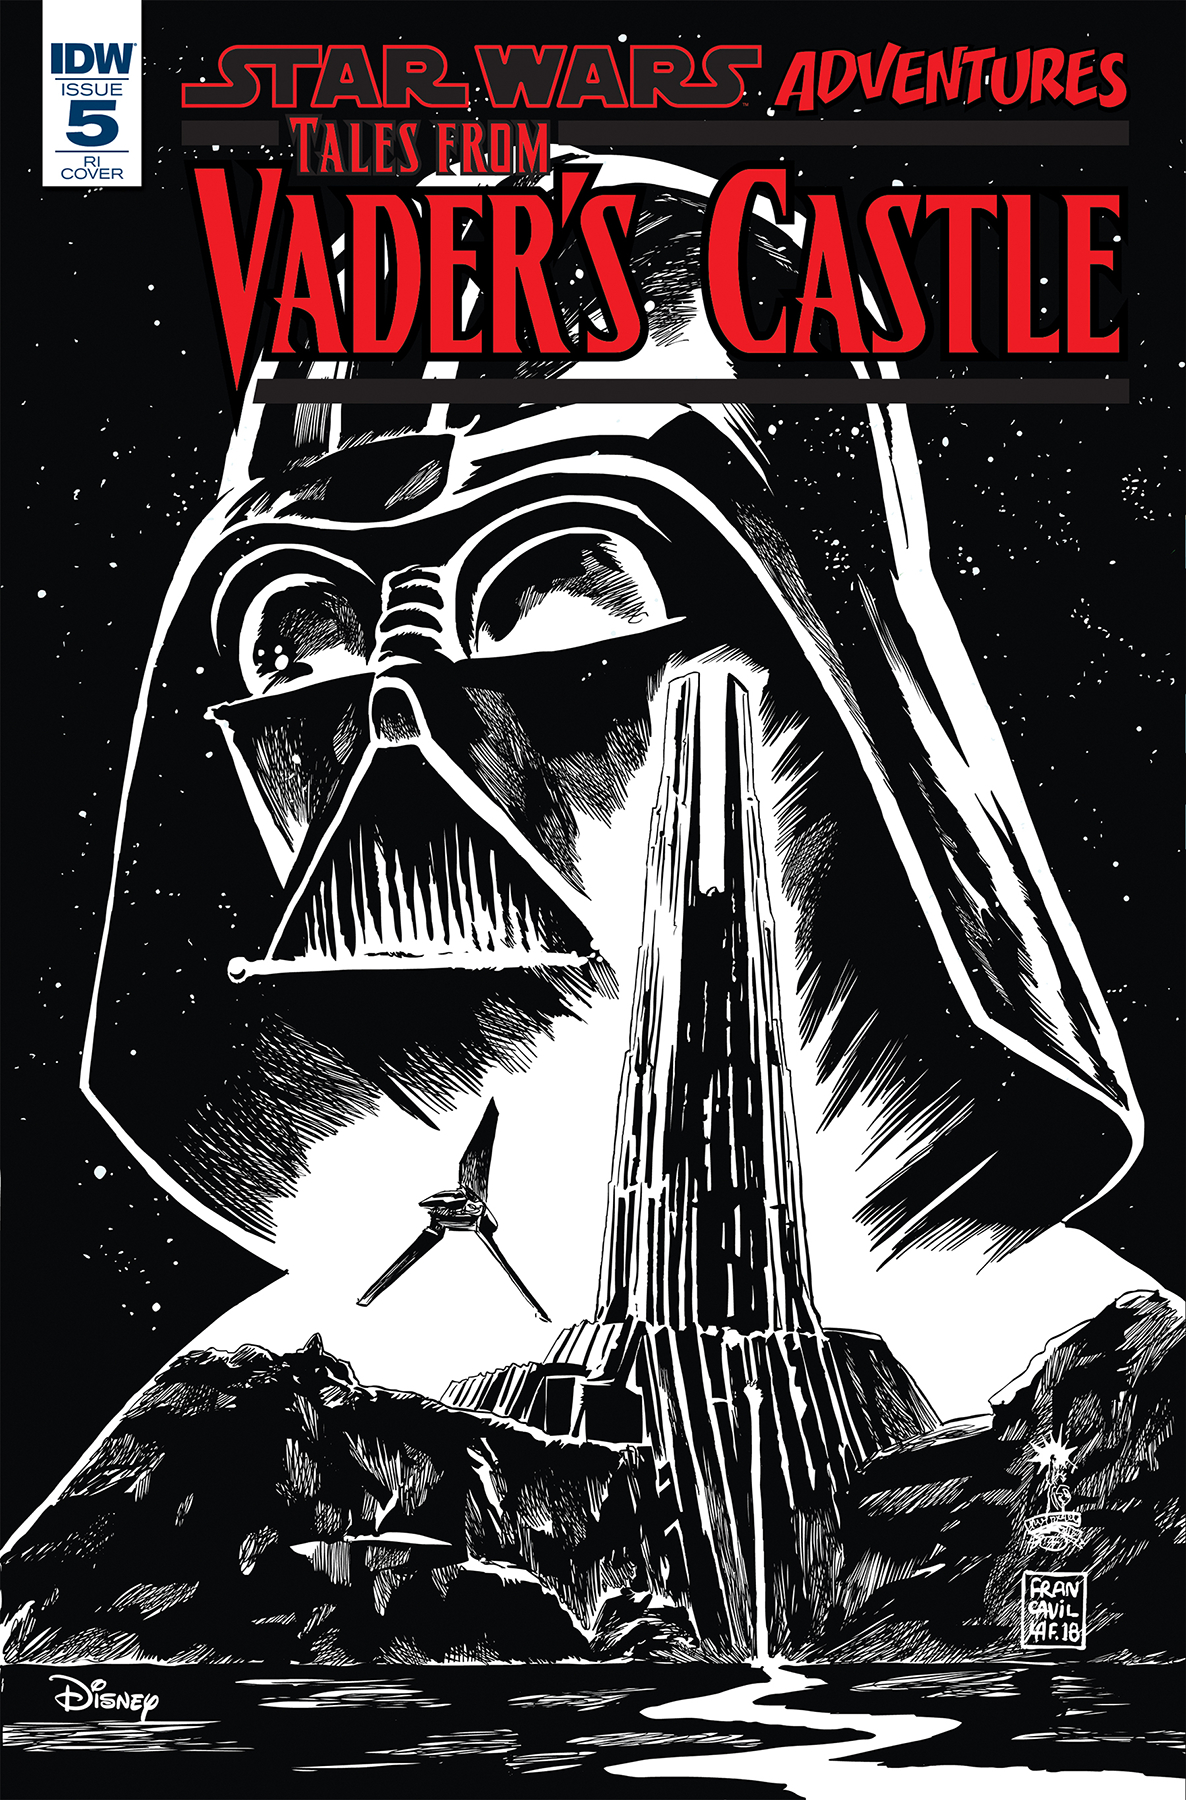 STAR WARS TALES FROM VADERS CASTLE #5 (OF 5) 10 COPY INCV FR